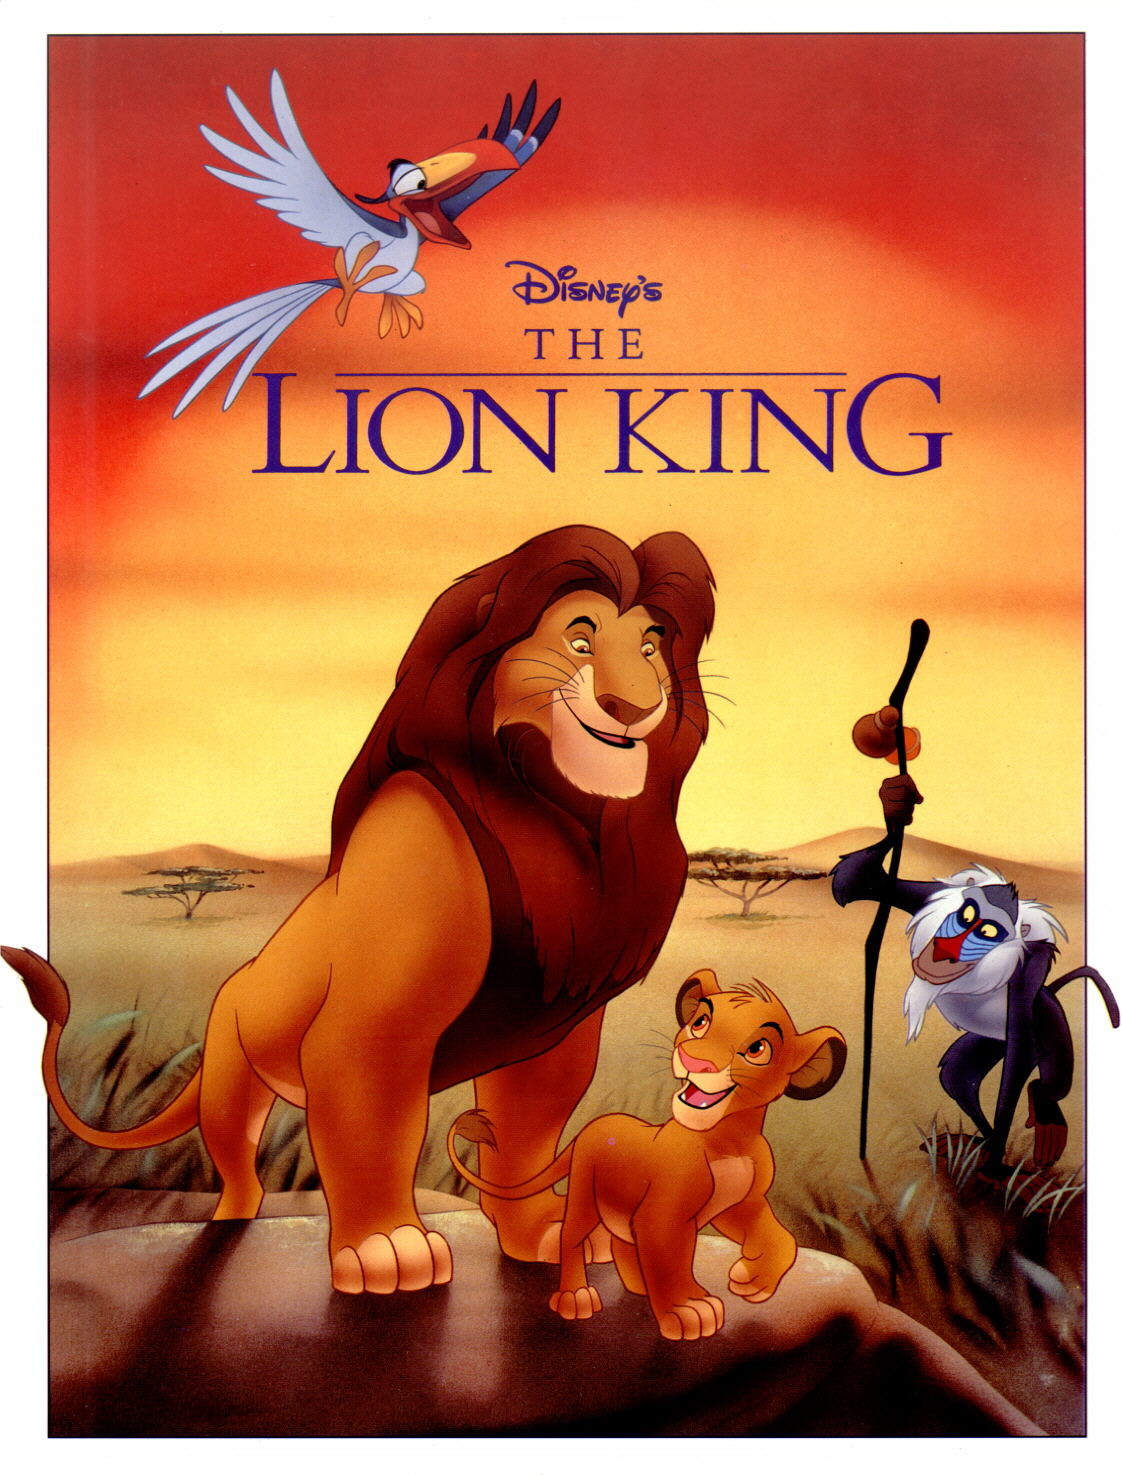 http://4.bp.blogspot.com/-wM9NDHADV8o/T1WdRzvn_lI/AAAAAAAAADE/xxV1WfcVQXM/s1600/The+Lion+King-+wallpaper.jpg